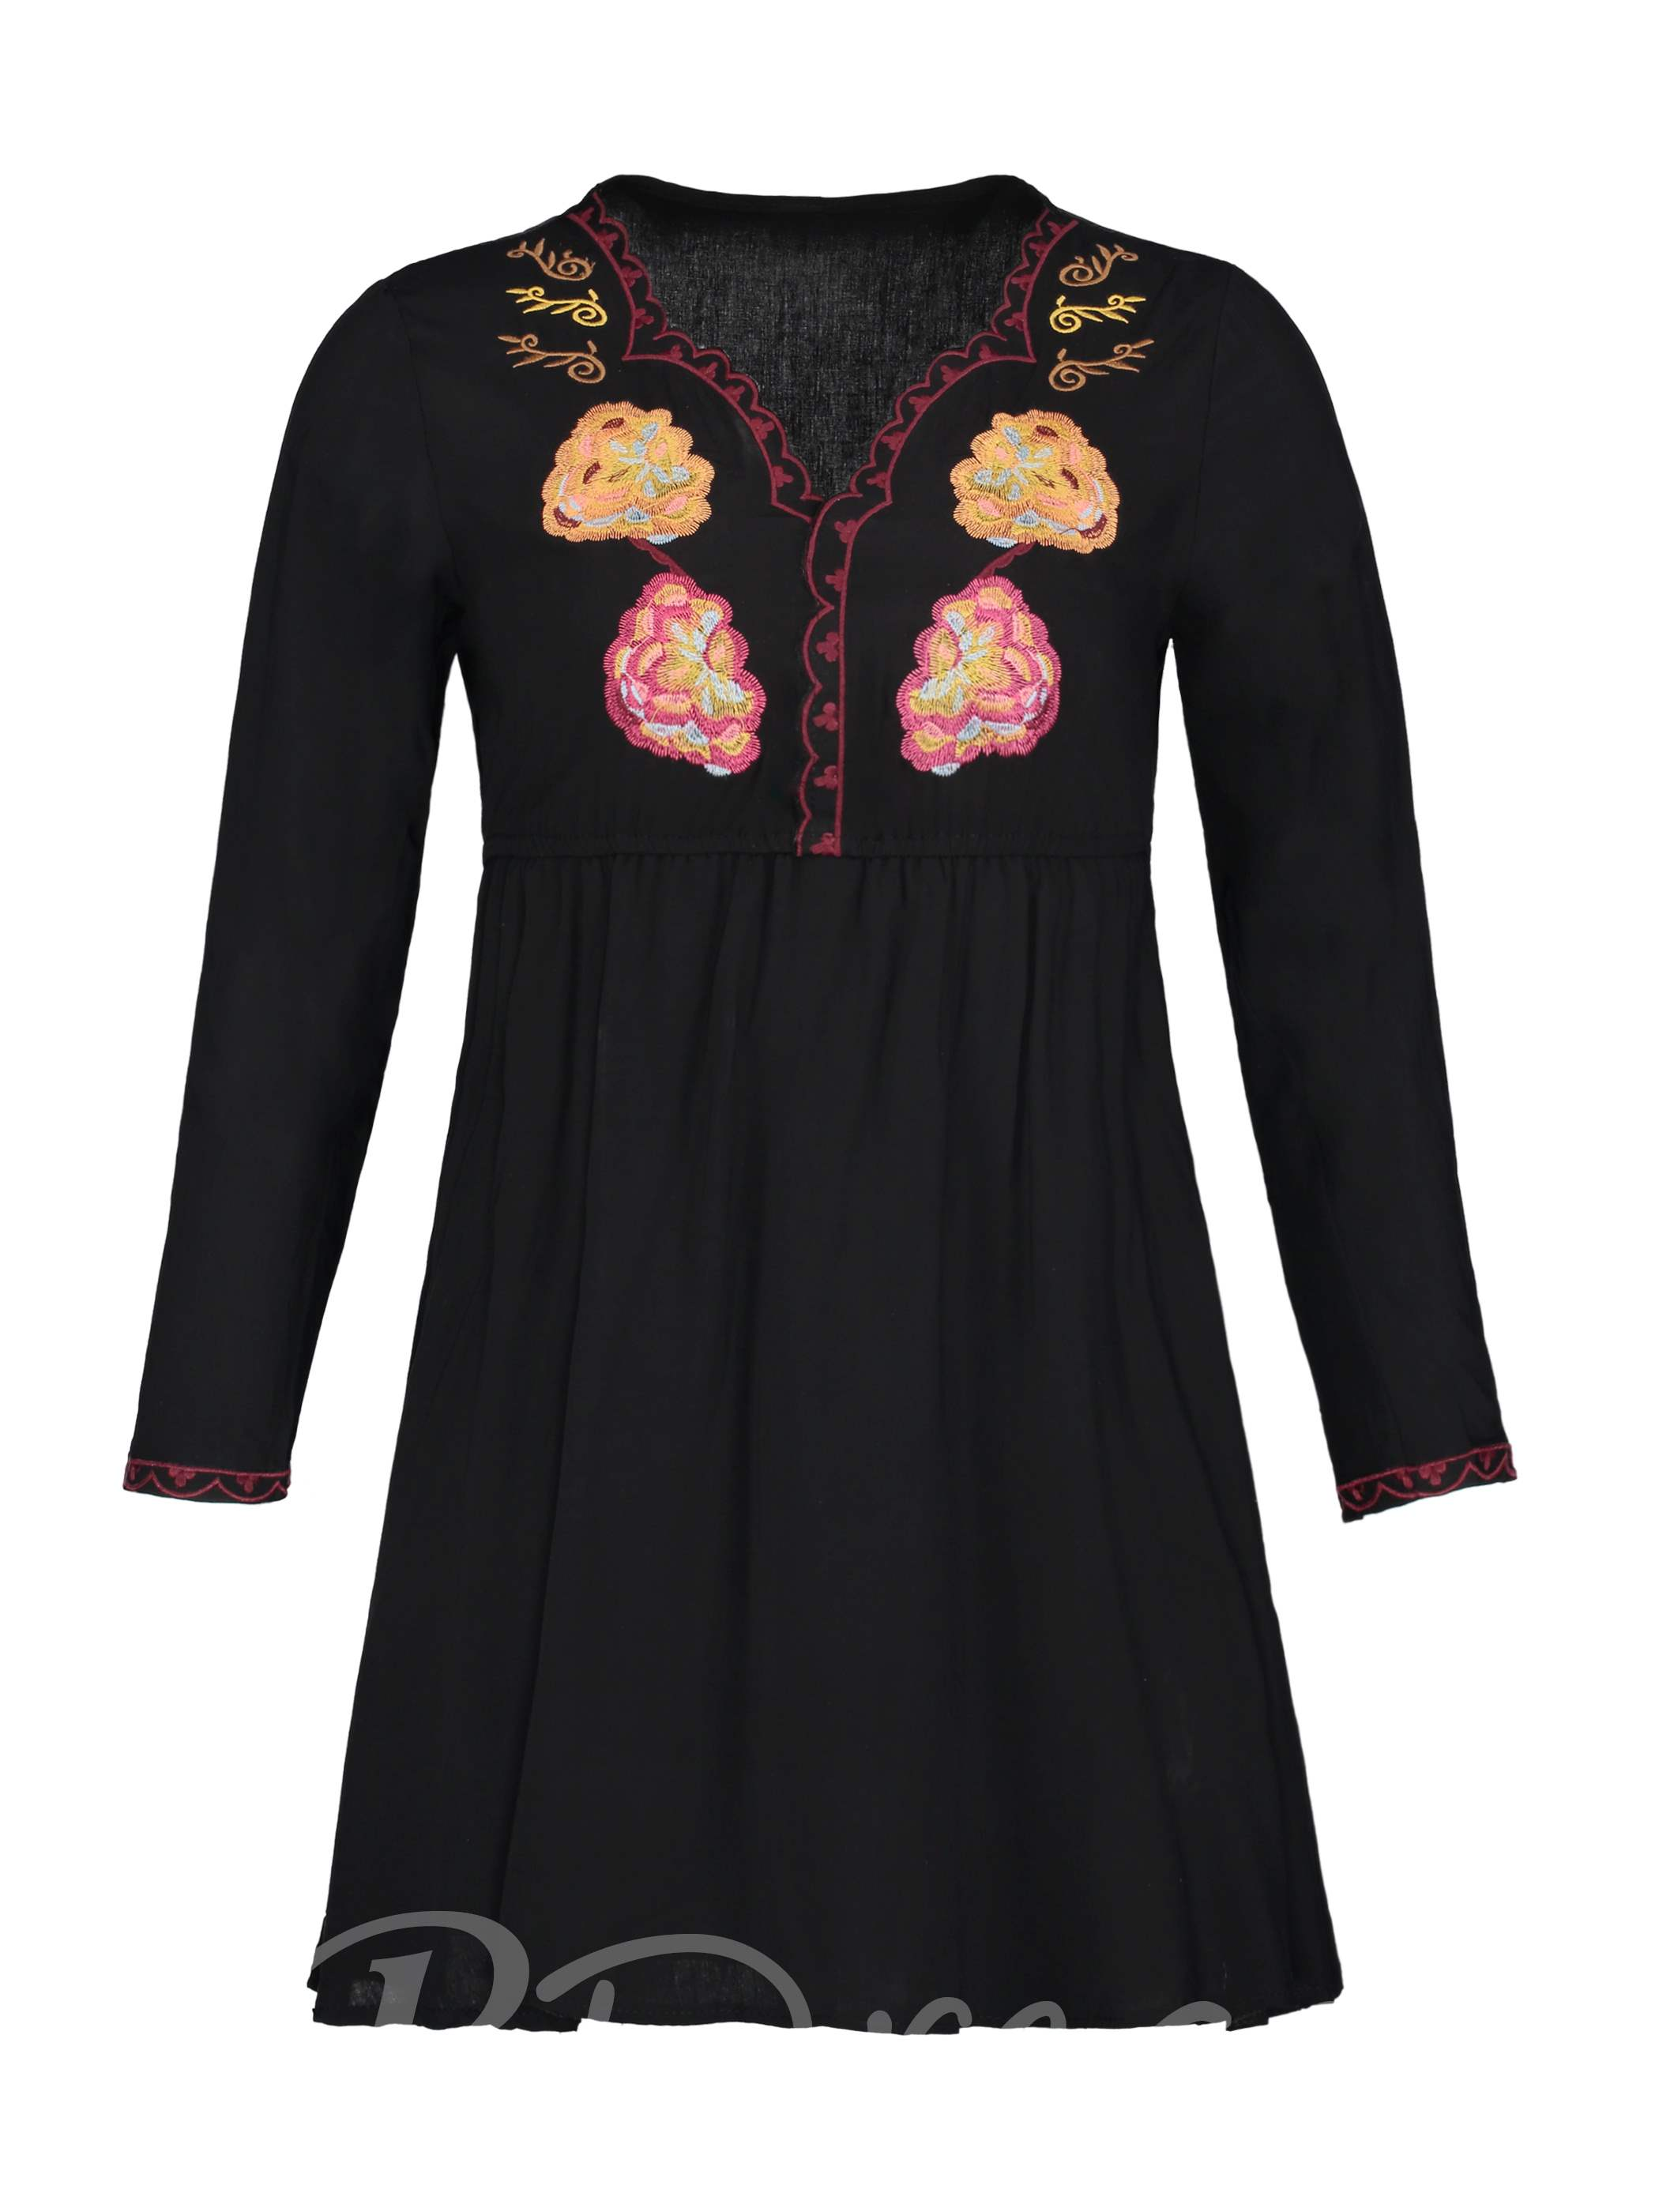 Buy V-Neck Floral Embroideried Women's A-Line Dress, Young17, 13095934 for $5.56 in TBDress store